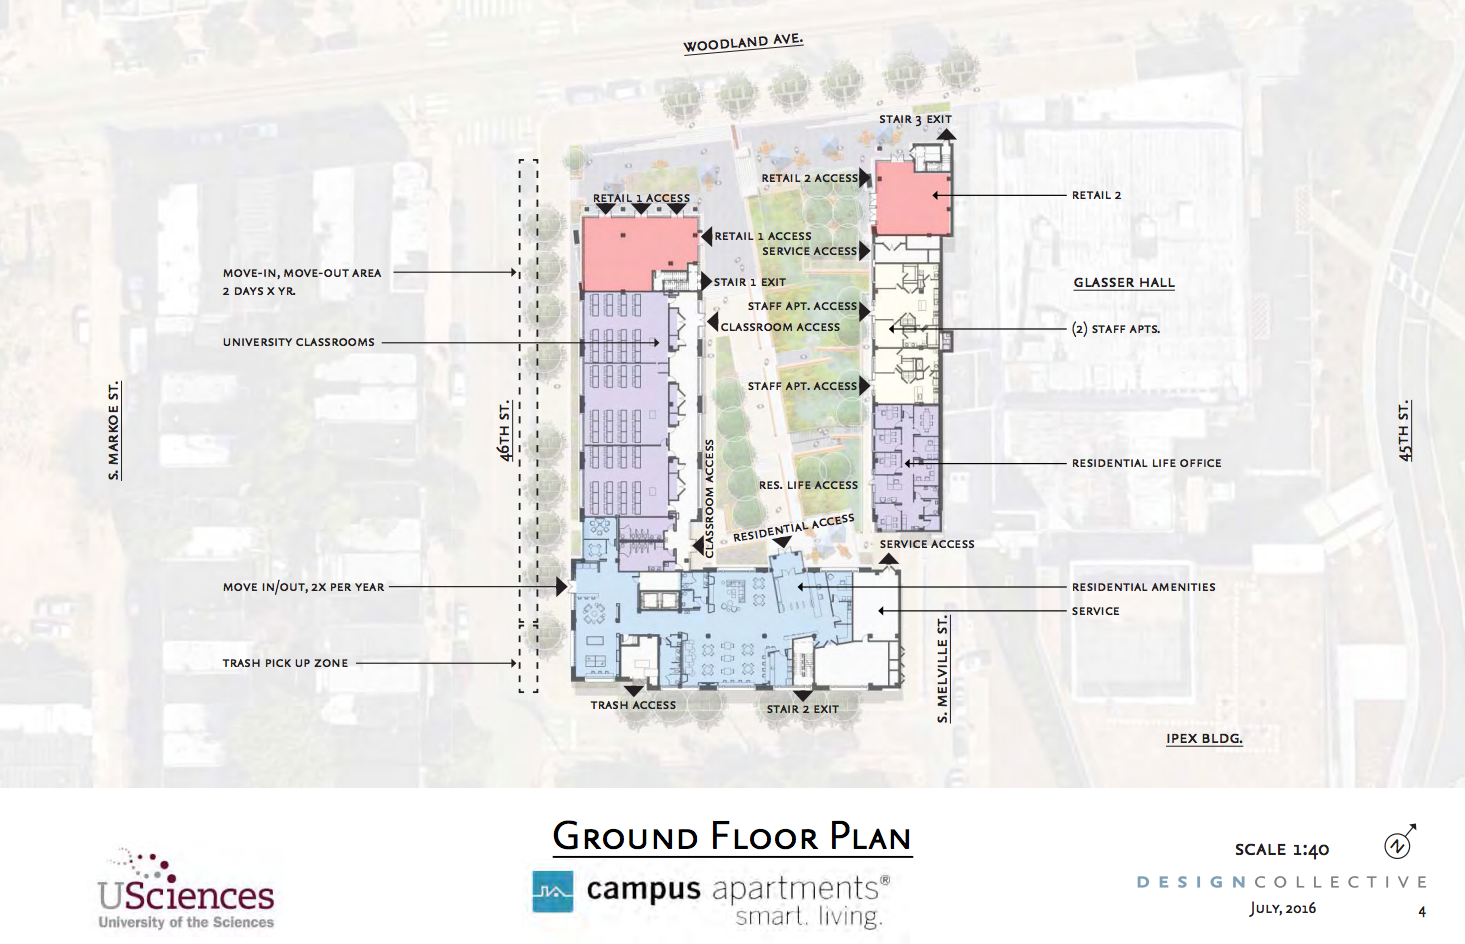 USciences residence hall ground floor plan | August 2016 CDR | Design Collective